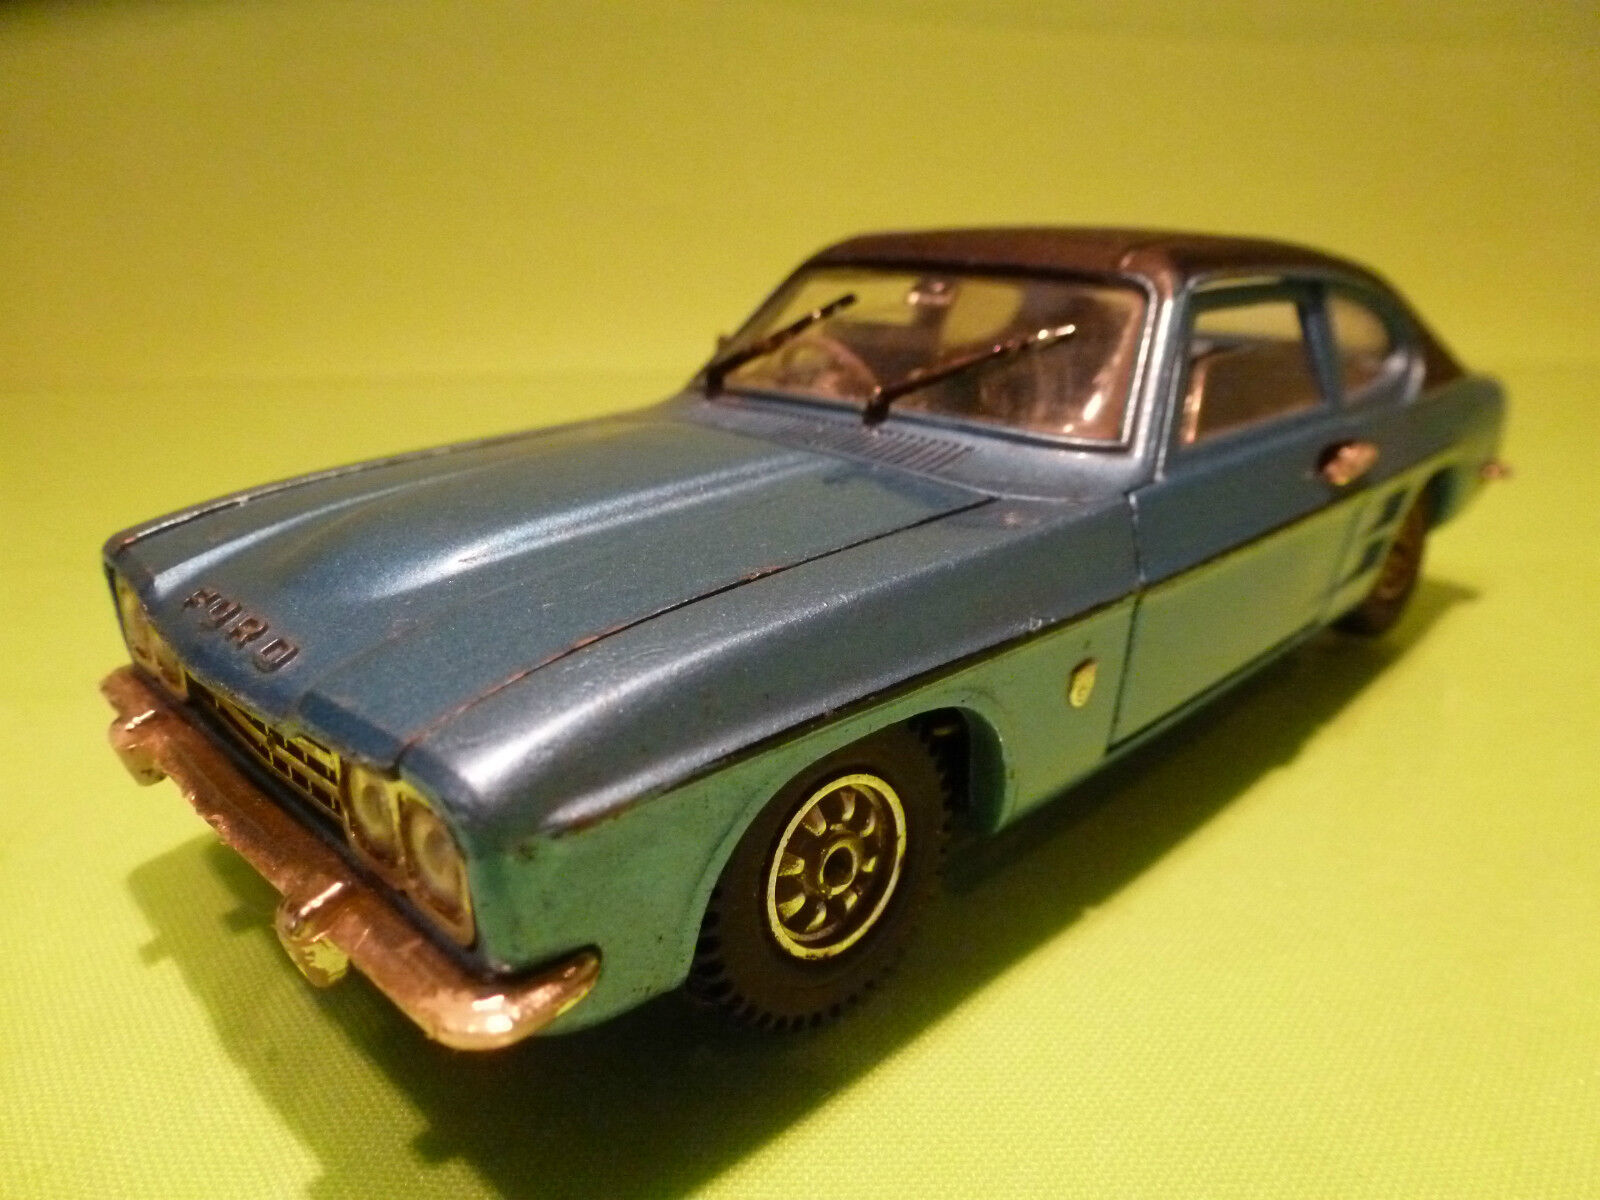 DINKY TOYS 2162 FORD CAPRI - blu 1 25 - RARE SELTEN - GOOD CONDITION